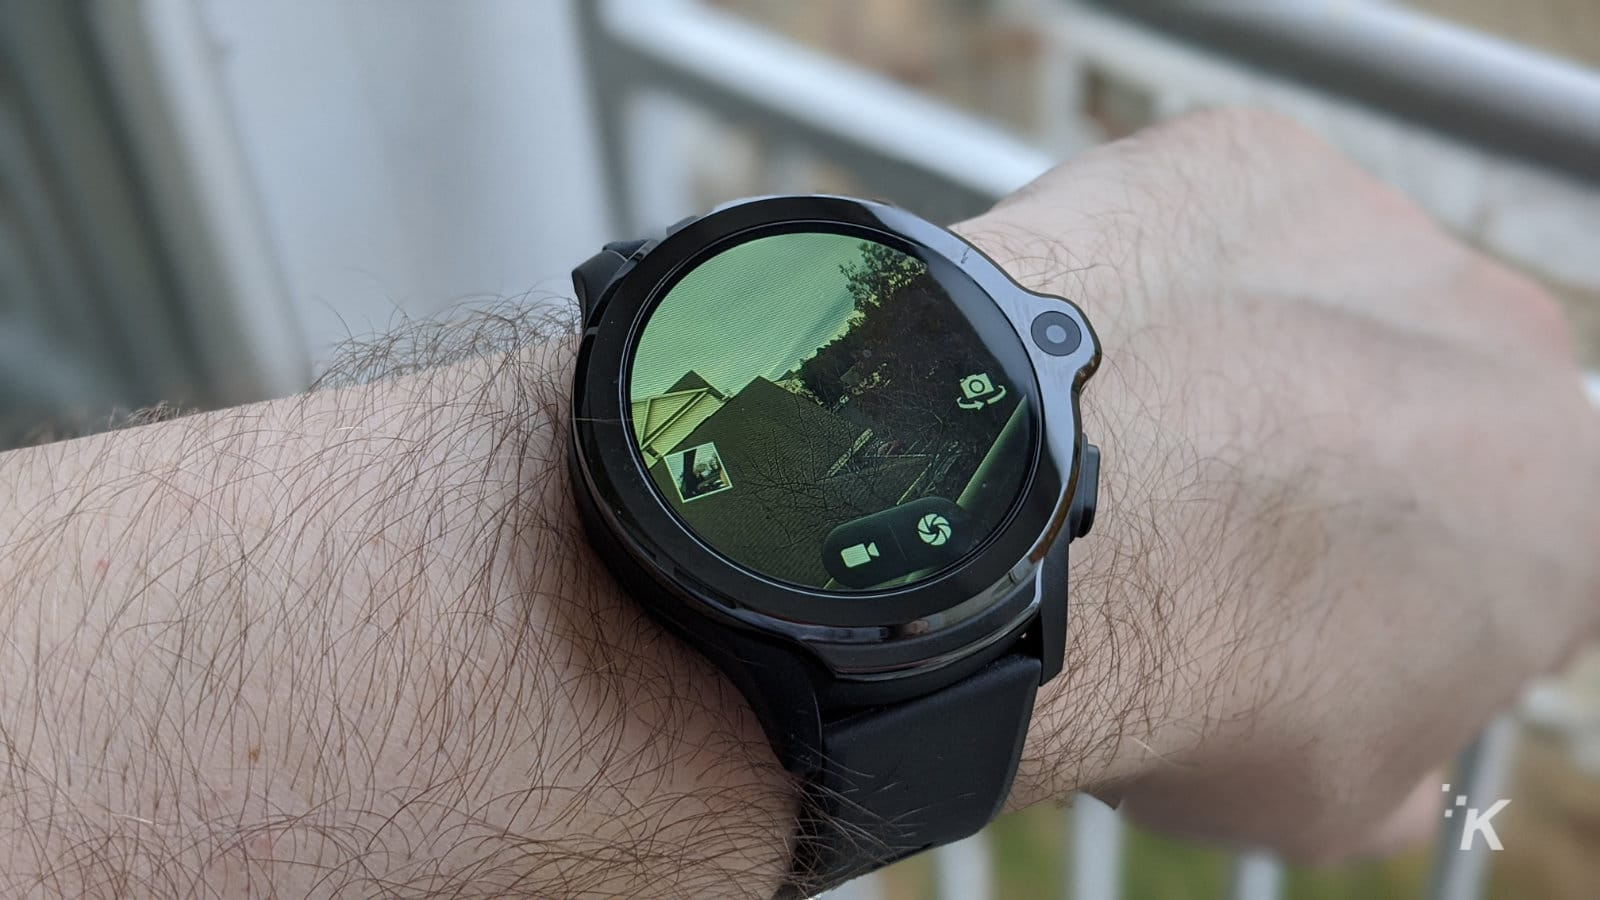 kospet smartwatch taking a photo